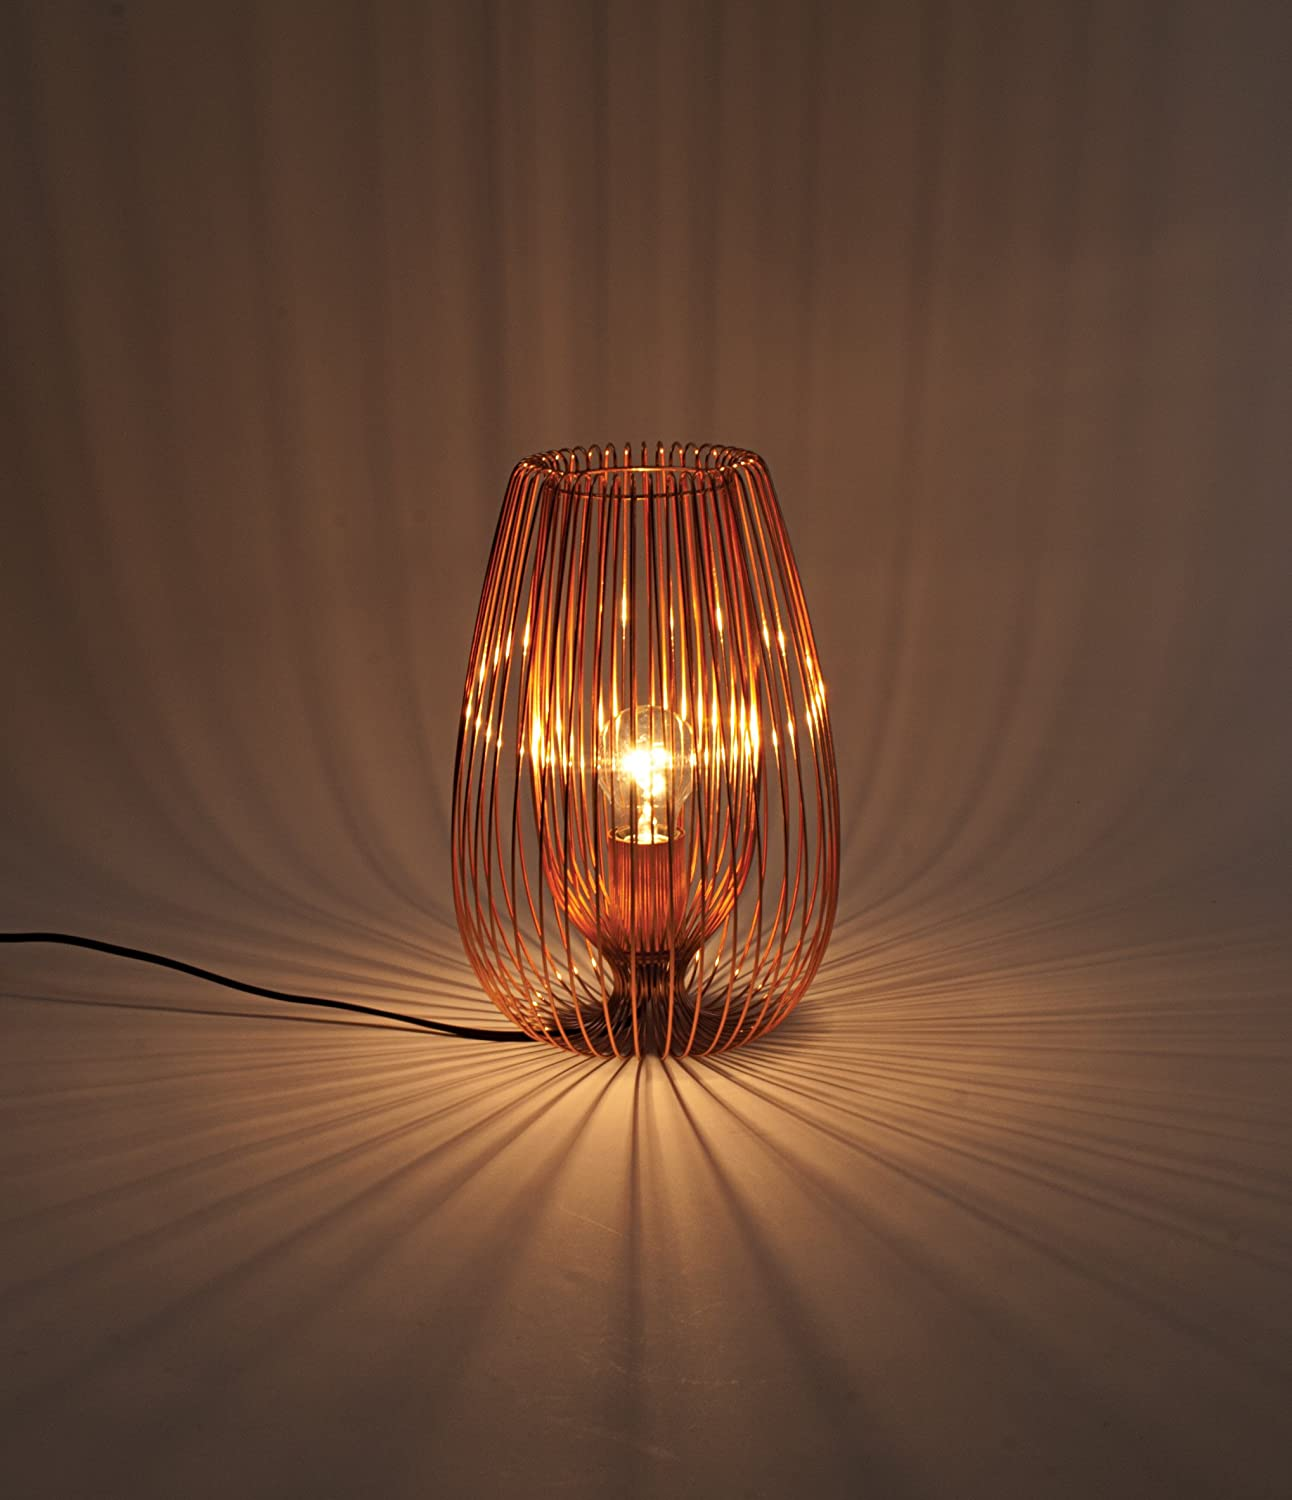 Contemporary modern copper wire table light lamp 42w amazon contemporary modern copper wire table light lamp 42w amazon lighting greentooth Images